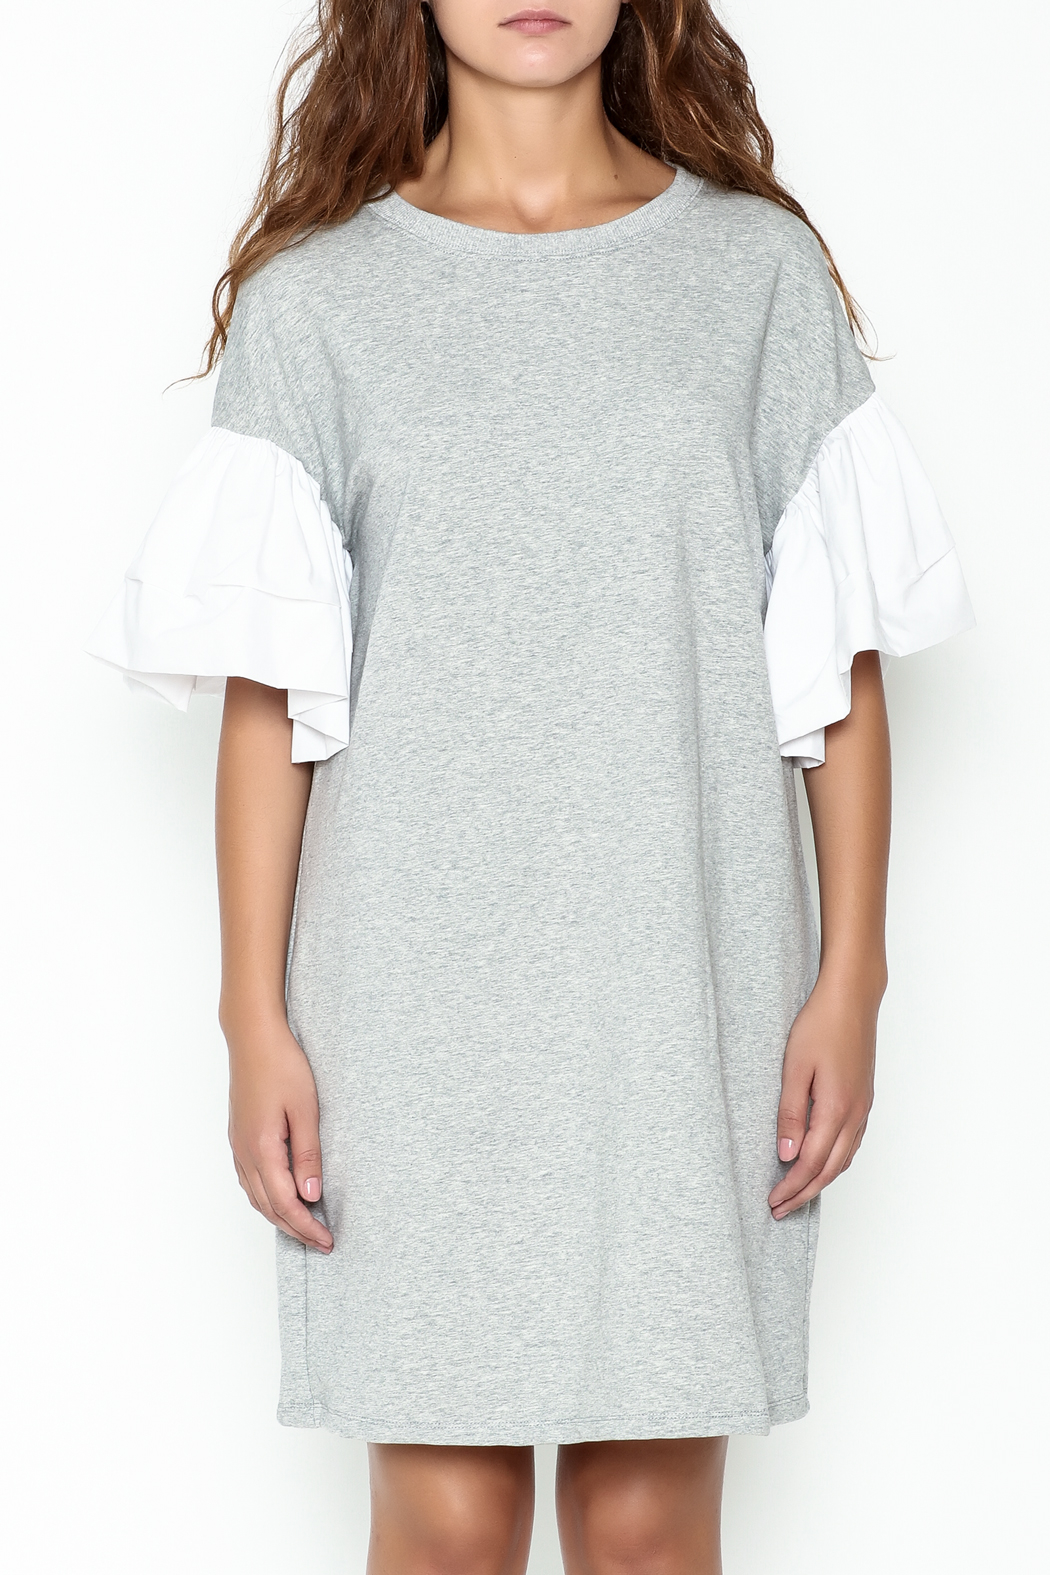 cq by cq Contrast Sleeve Shift Dress - Front Full Image